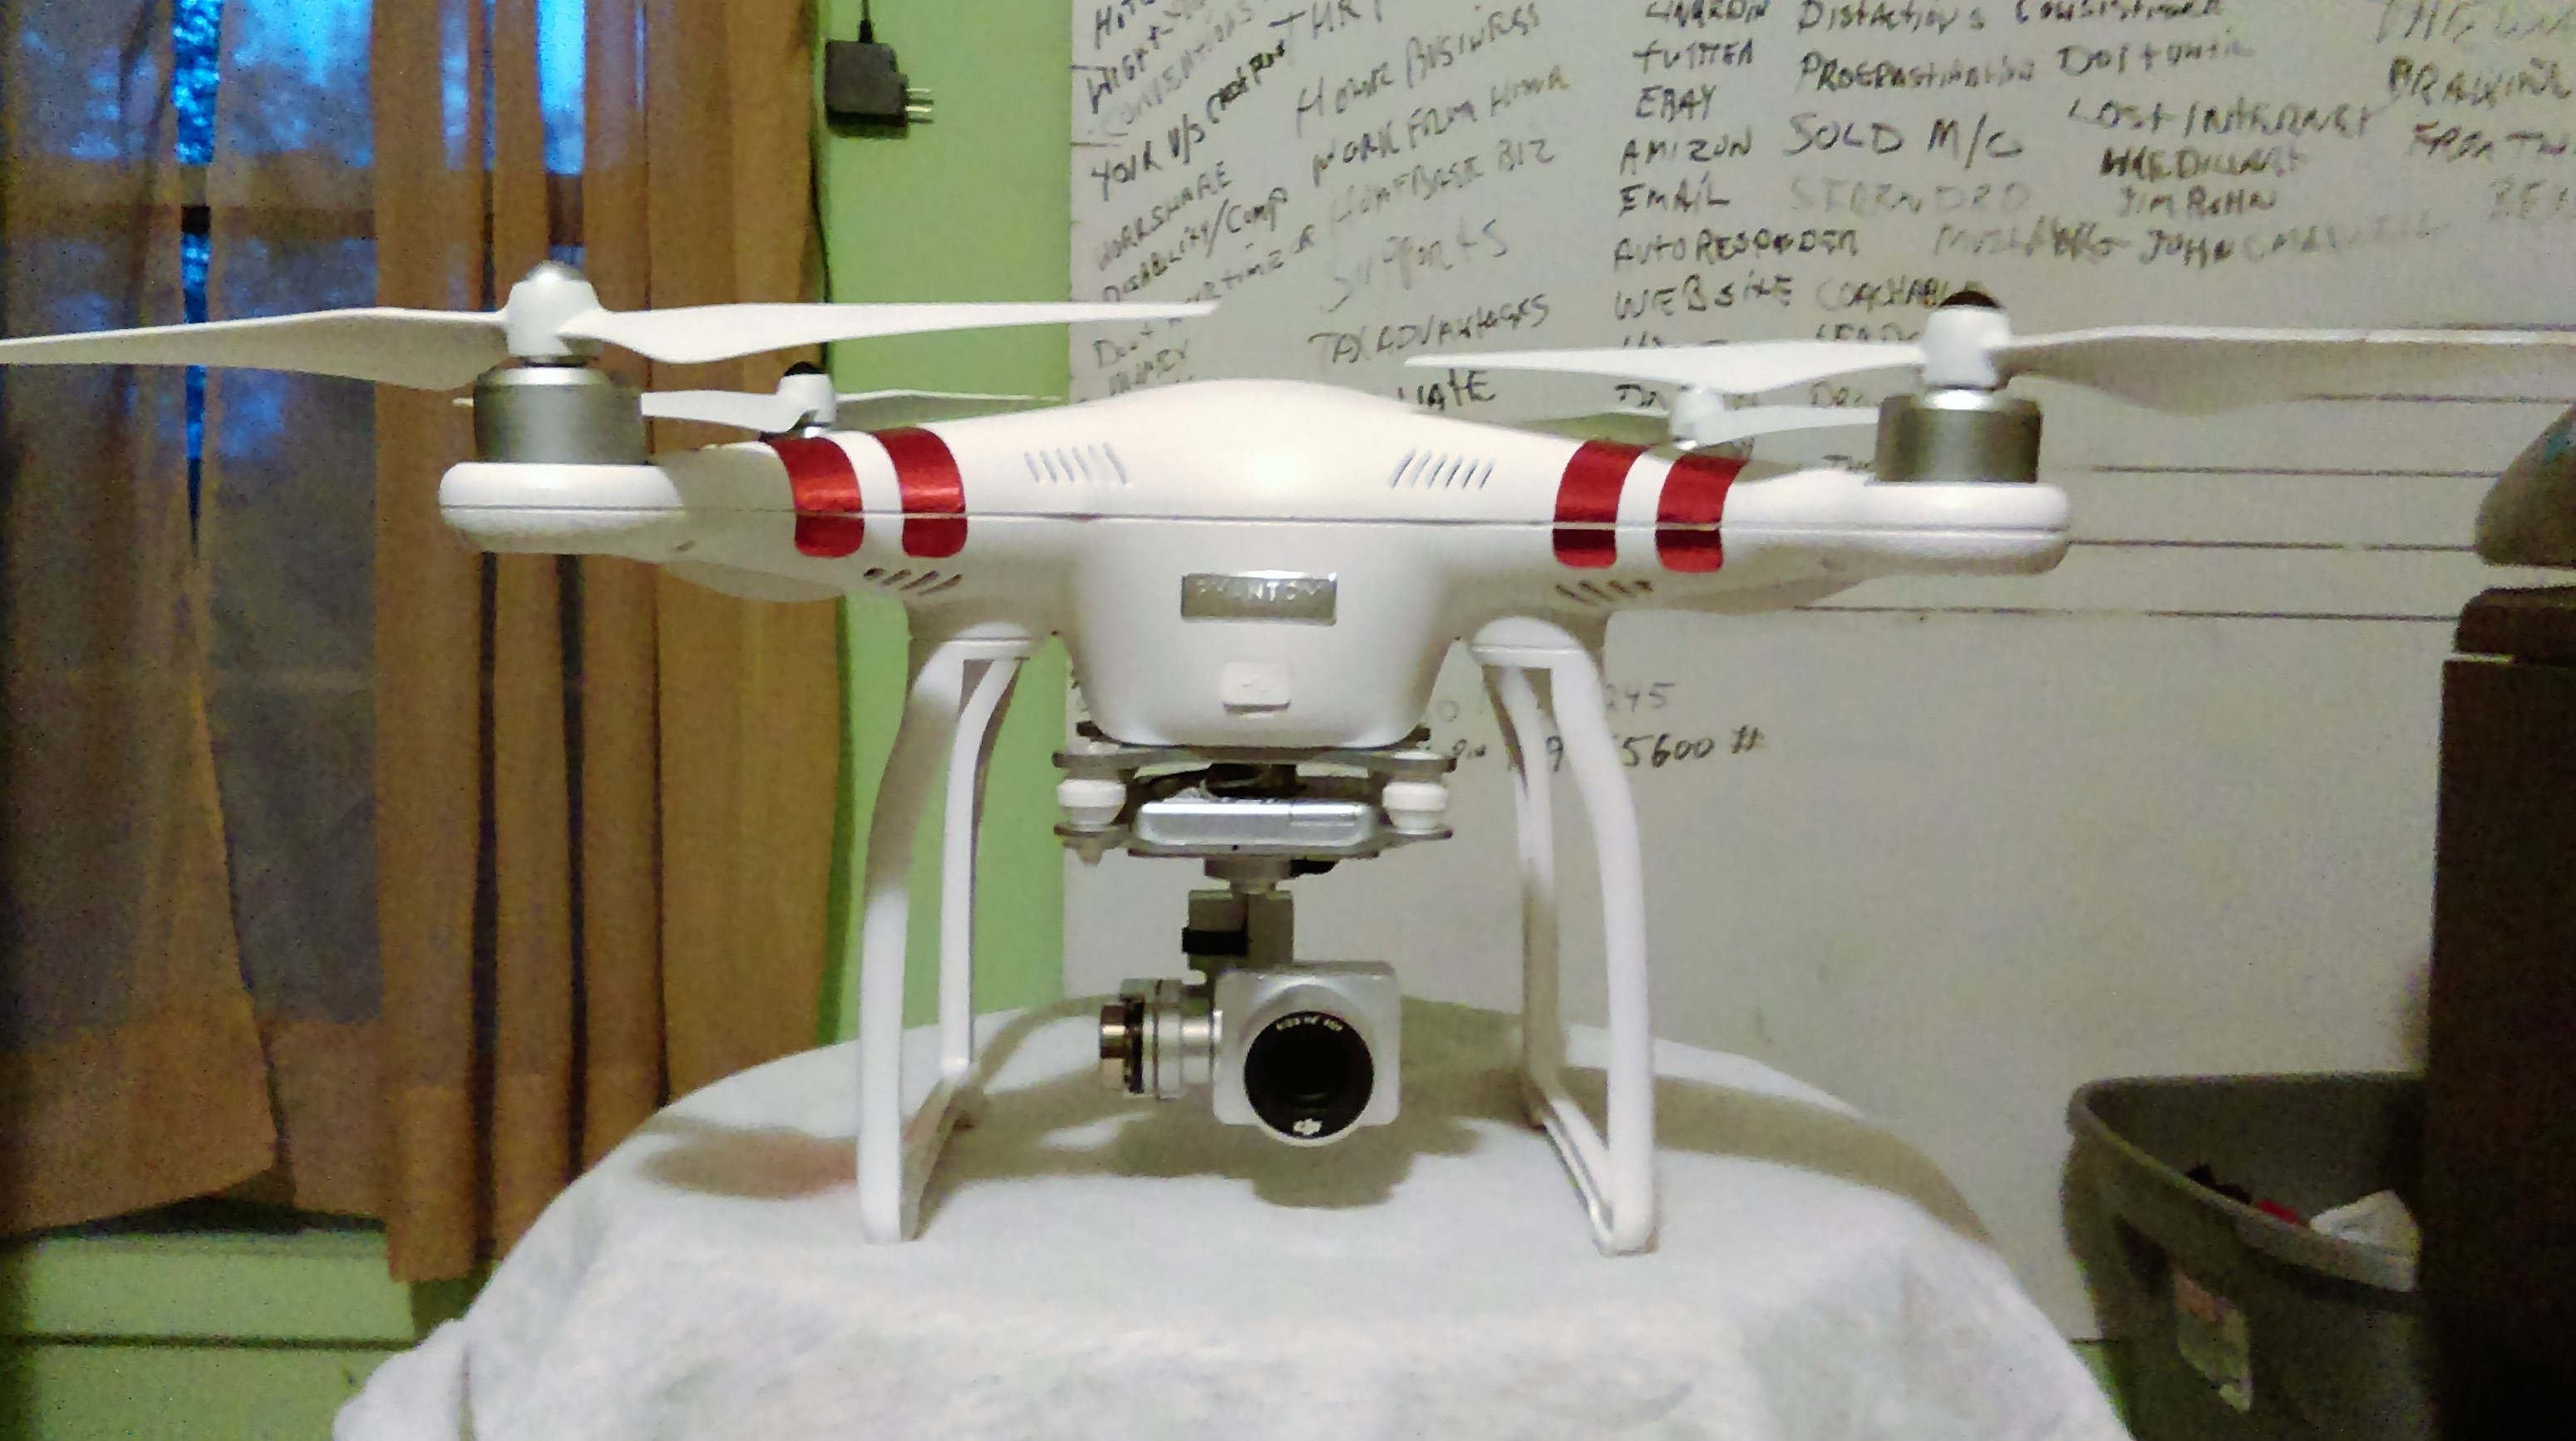 DJI Phantom 3 Post Crash Gimbal repair Pt 2